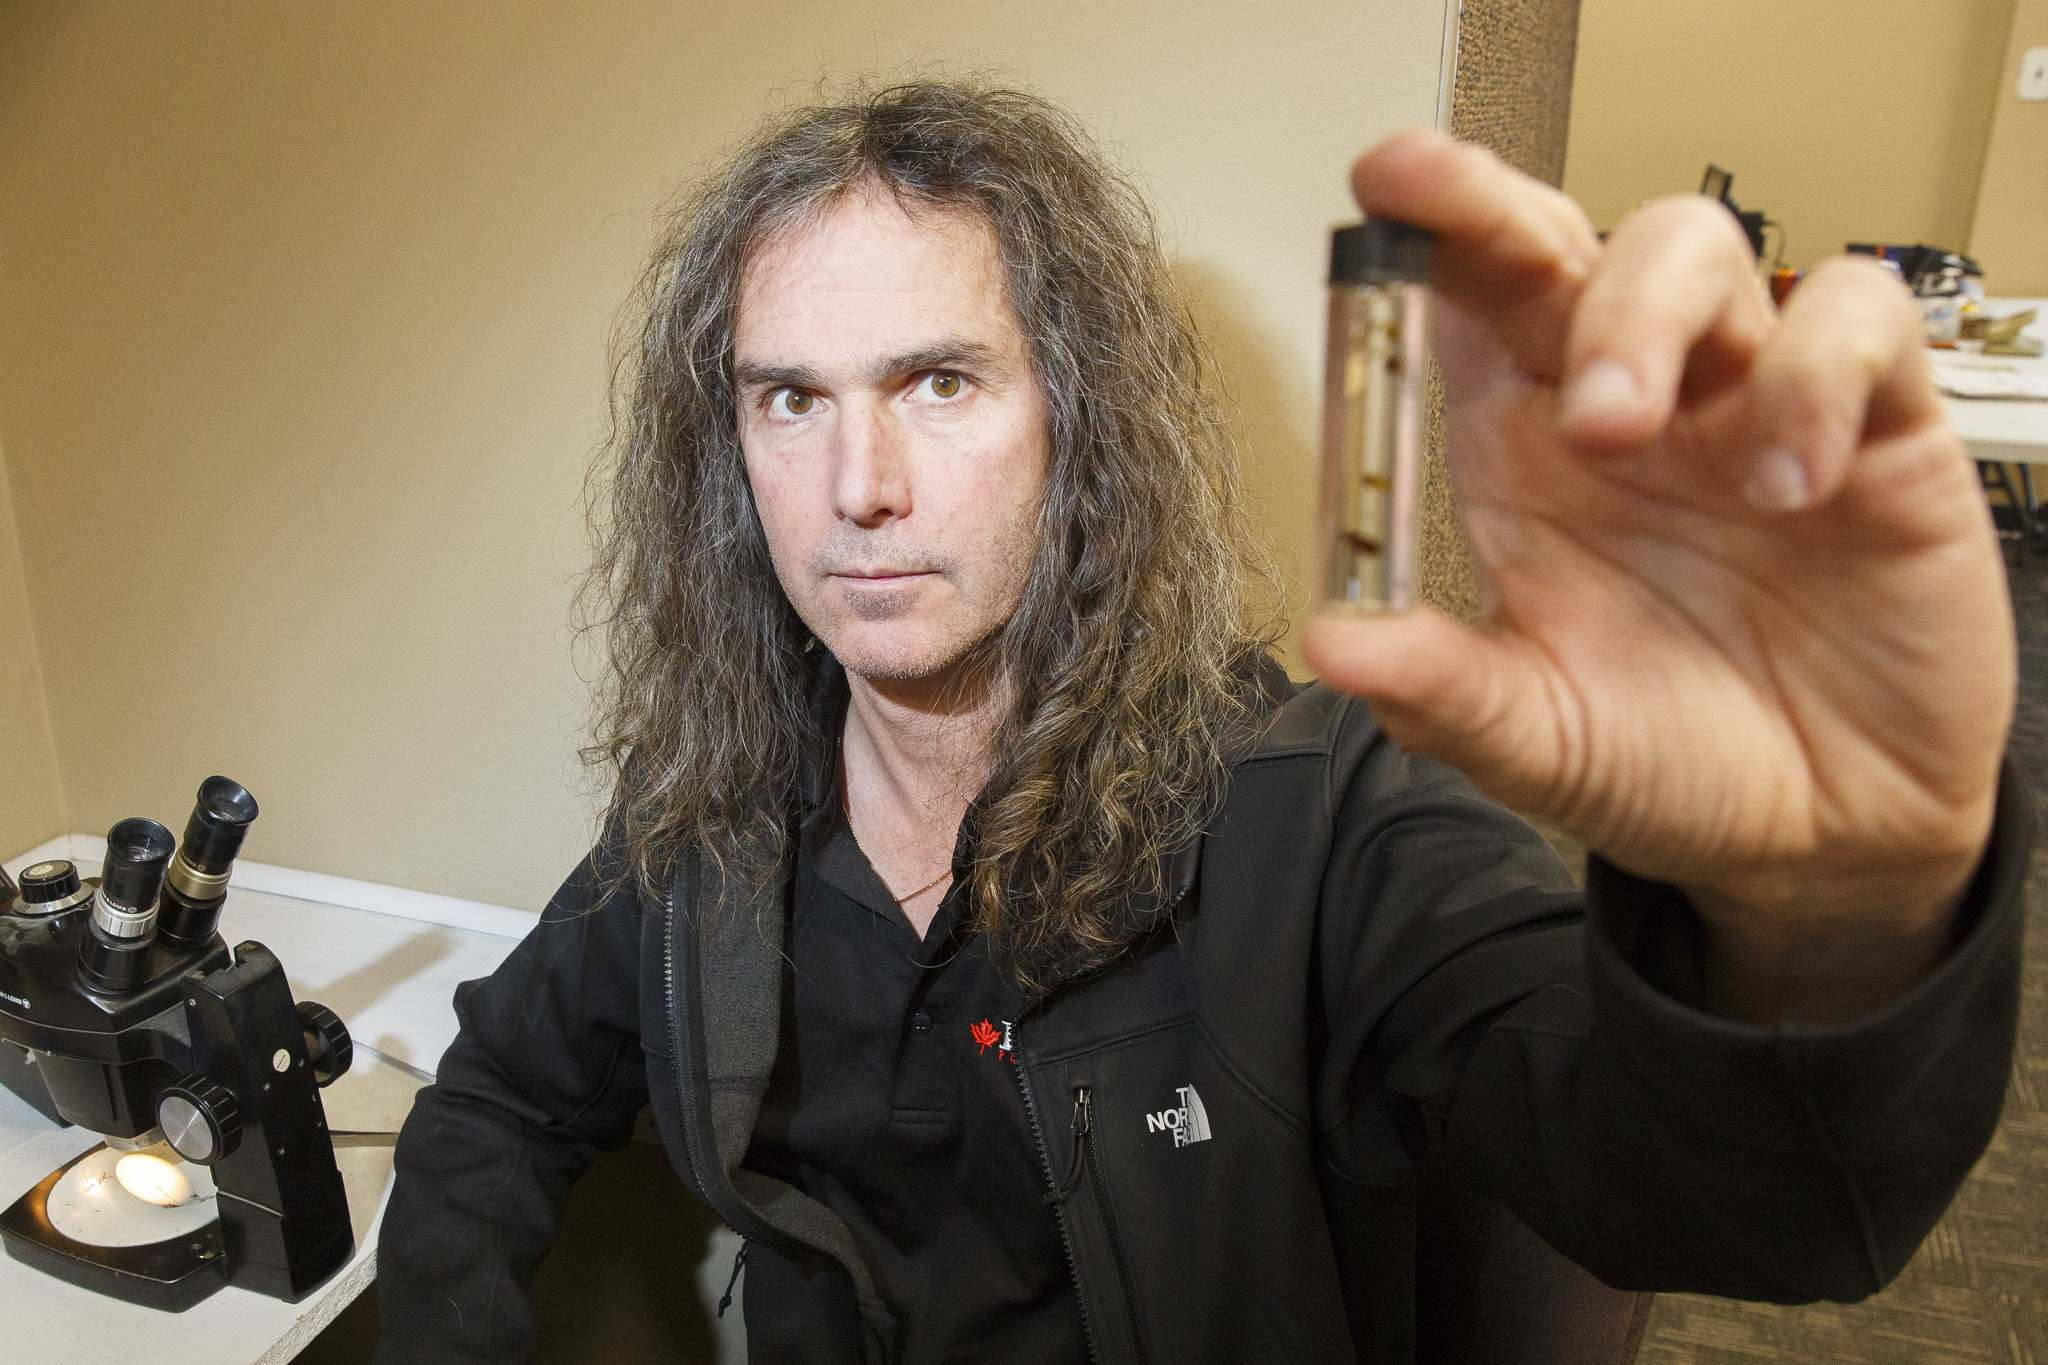 Taz Stuart, entomologist and Director of Technical Operations at Poulin's Pest Control, keeps a vial of bed bugs on him and knows everything about bed bugs. (Mike Deal / Winnipeg Free Press)